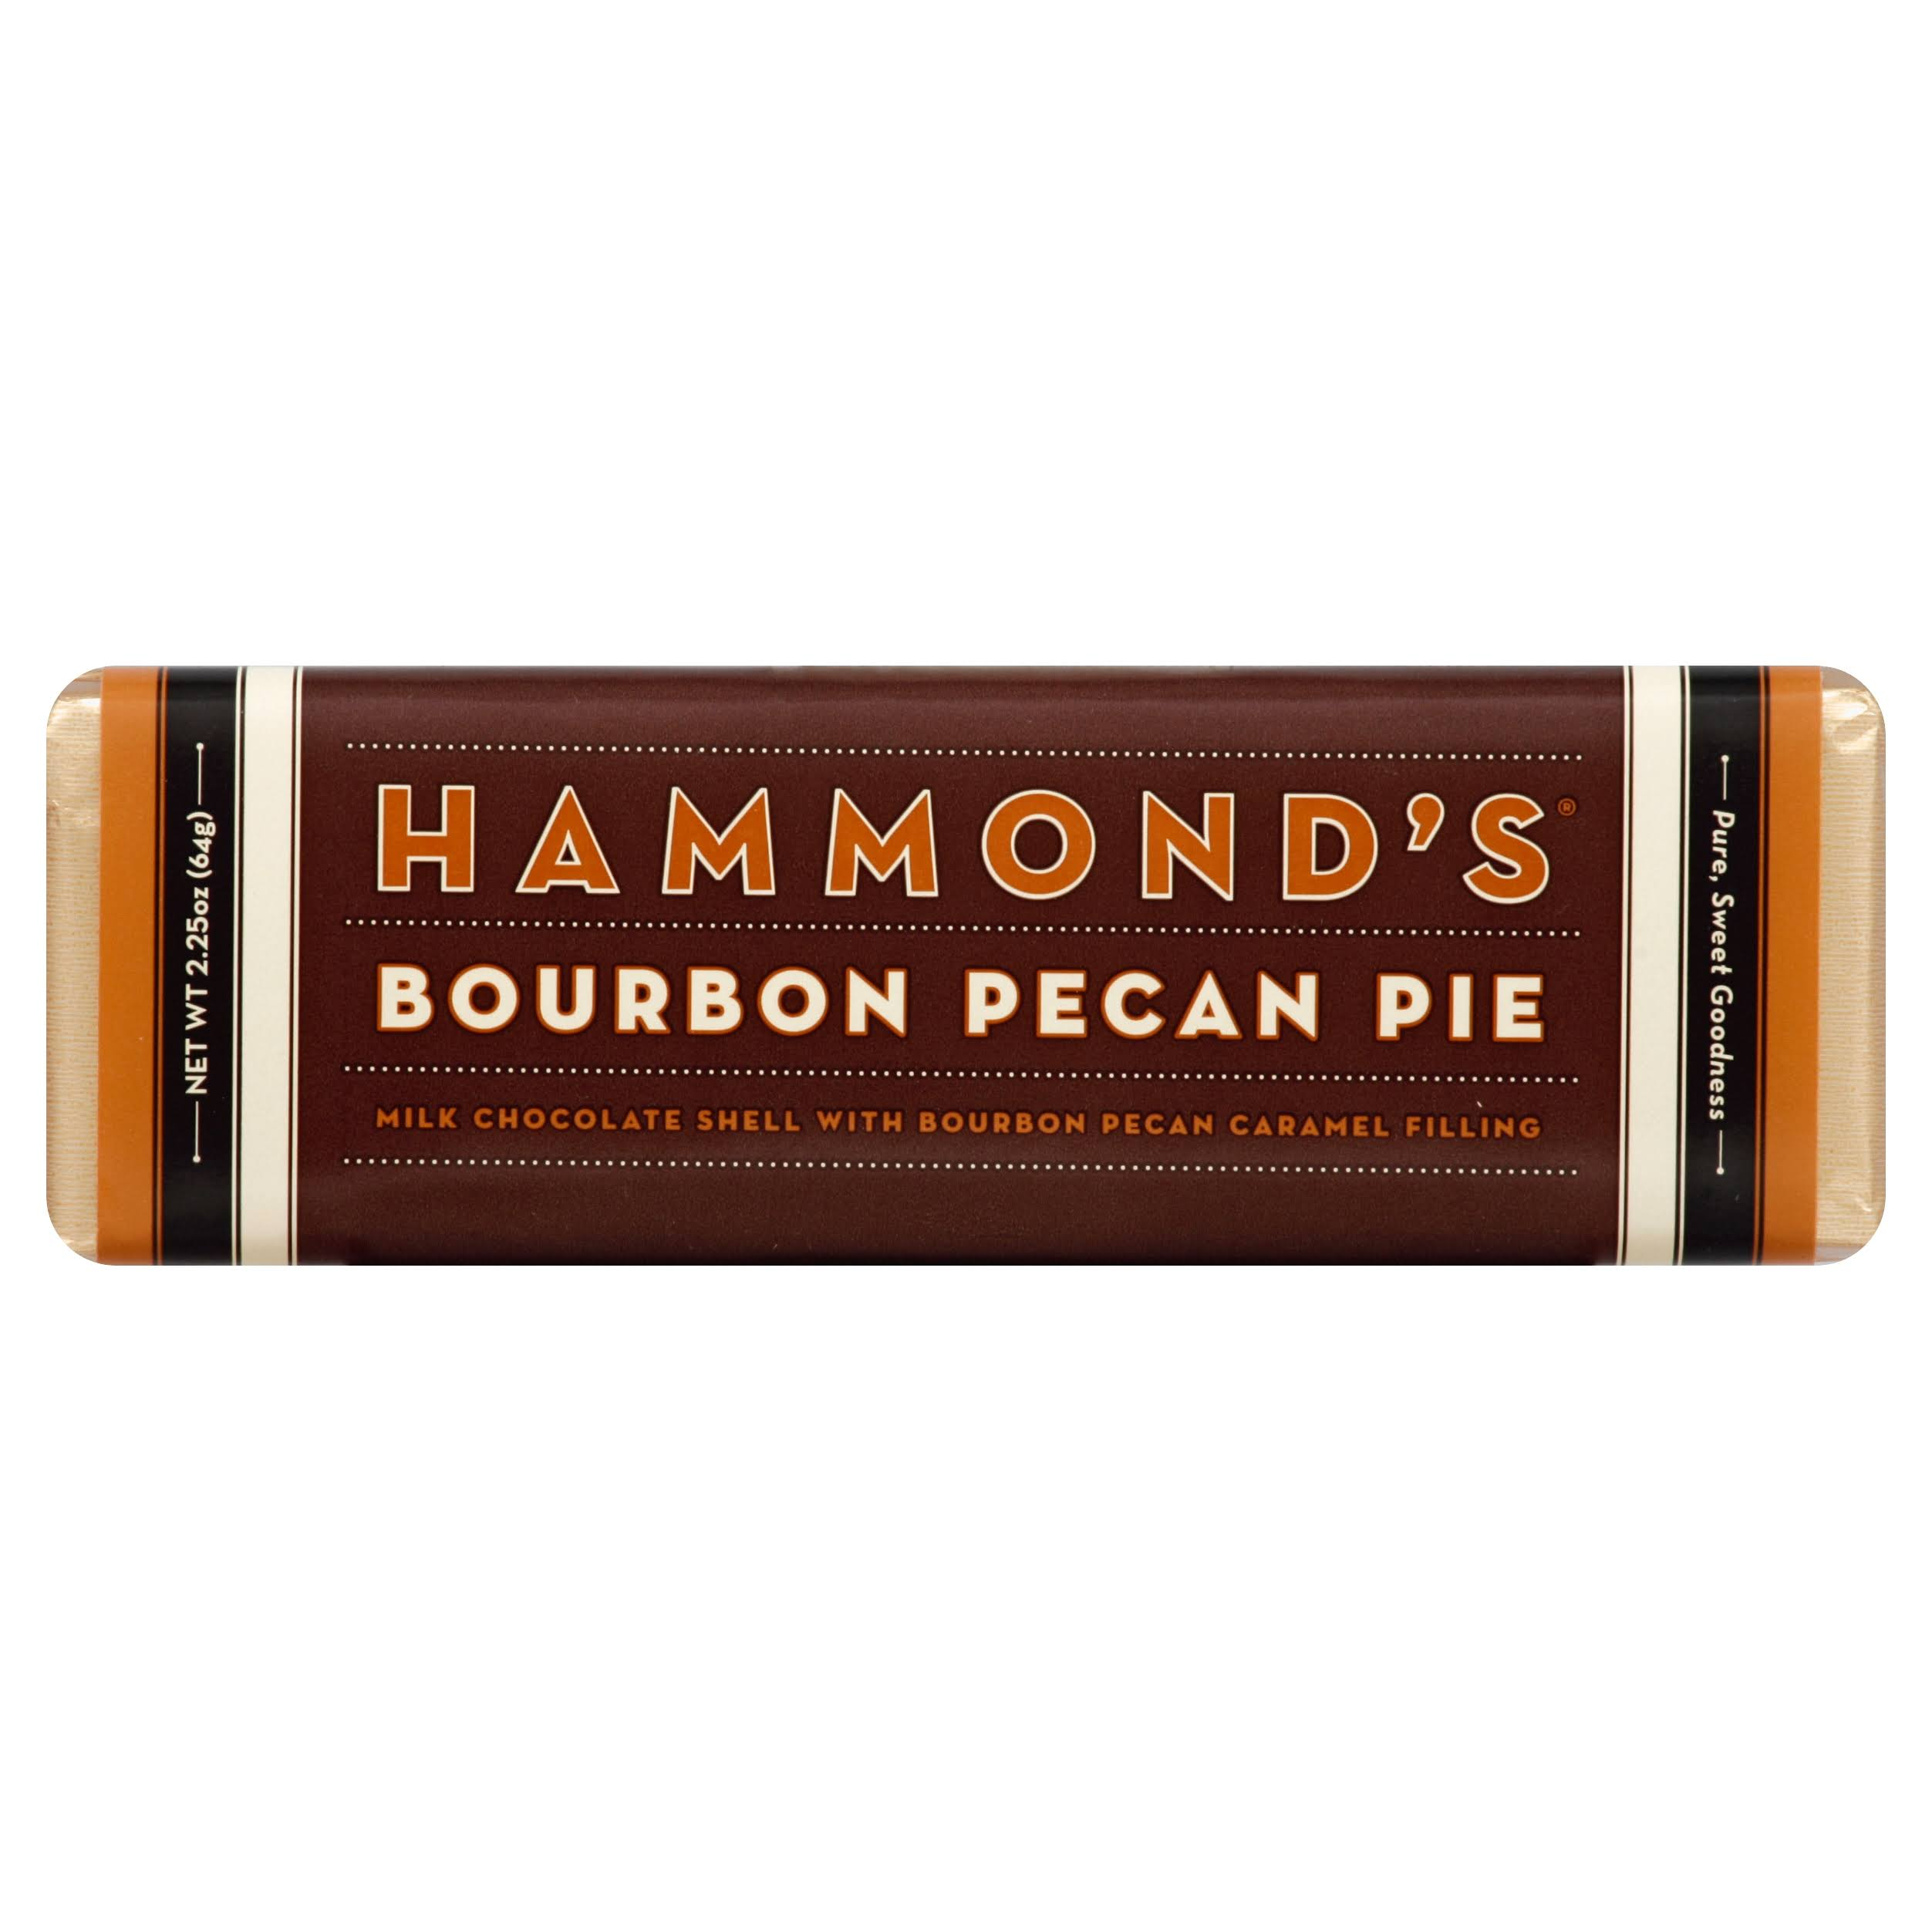 Hammonds Milk Chocolate, with Bourbon Pecan Caramel Filling - 2.25 oz